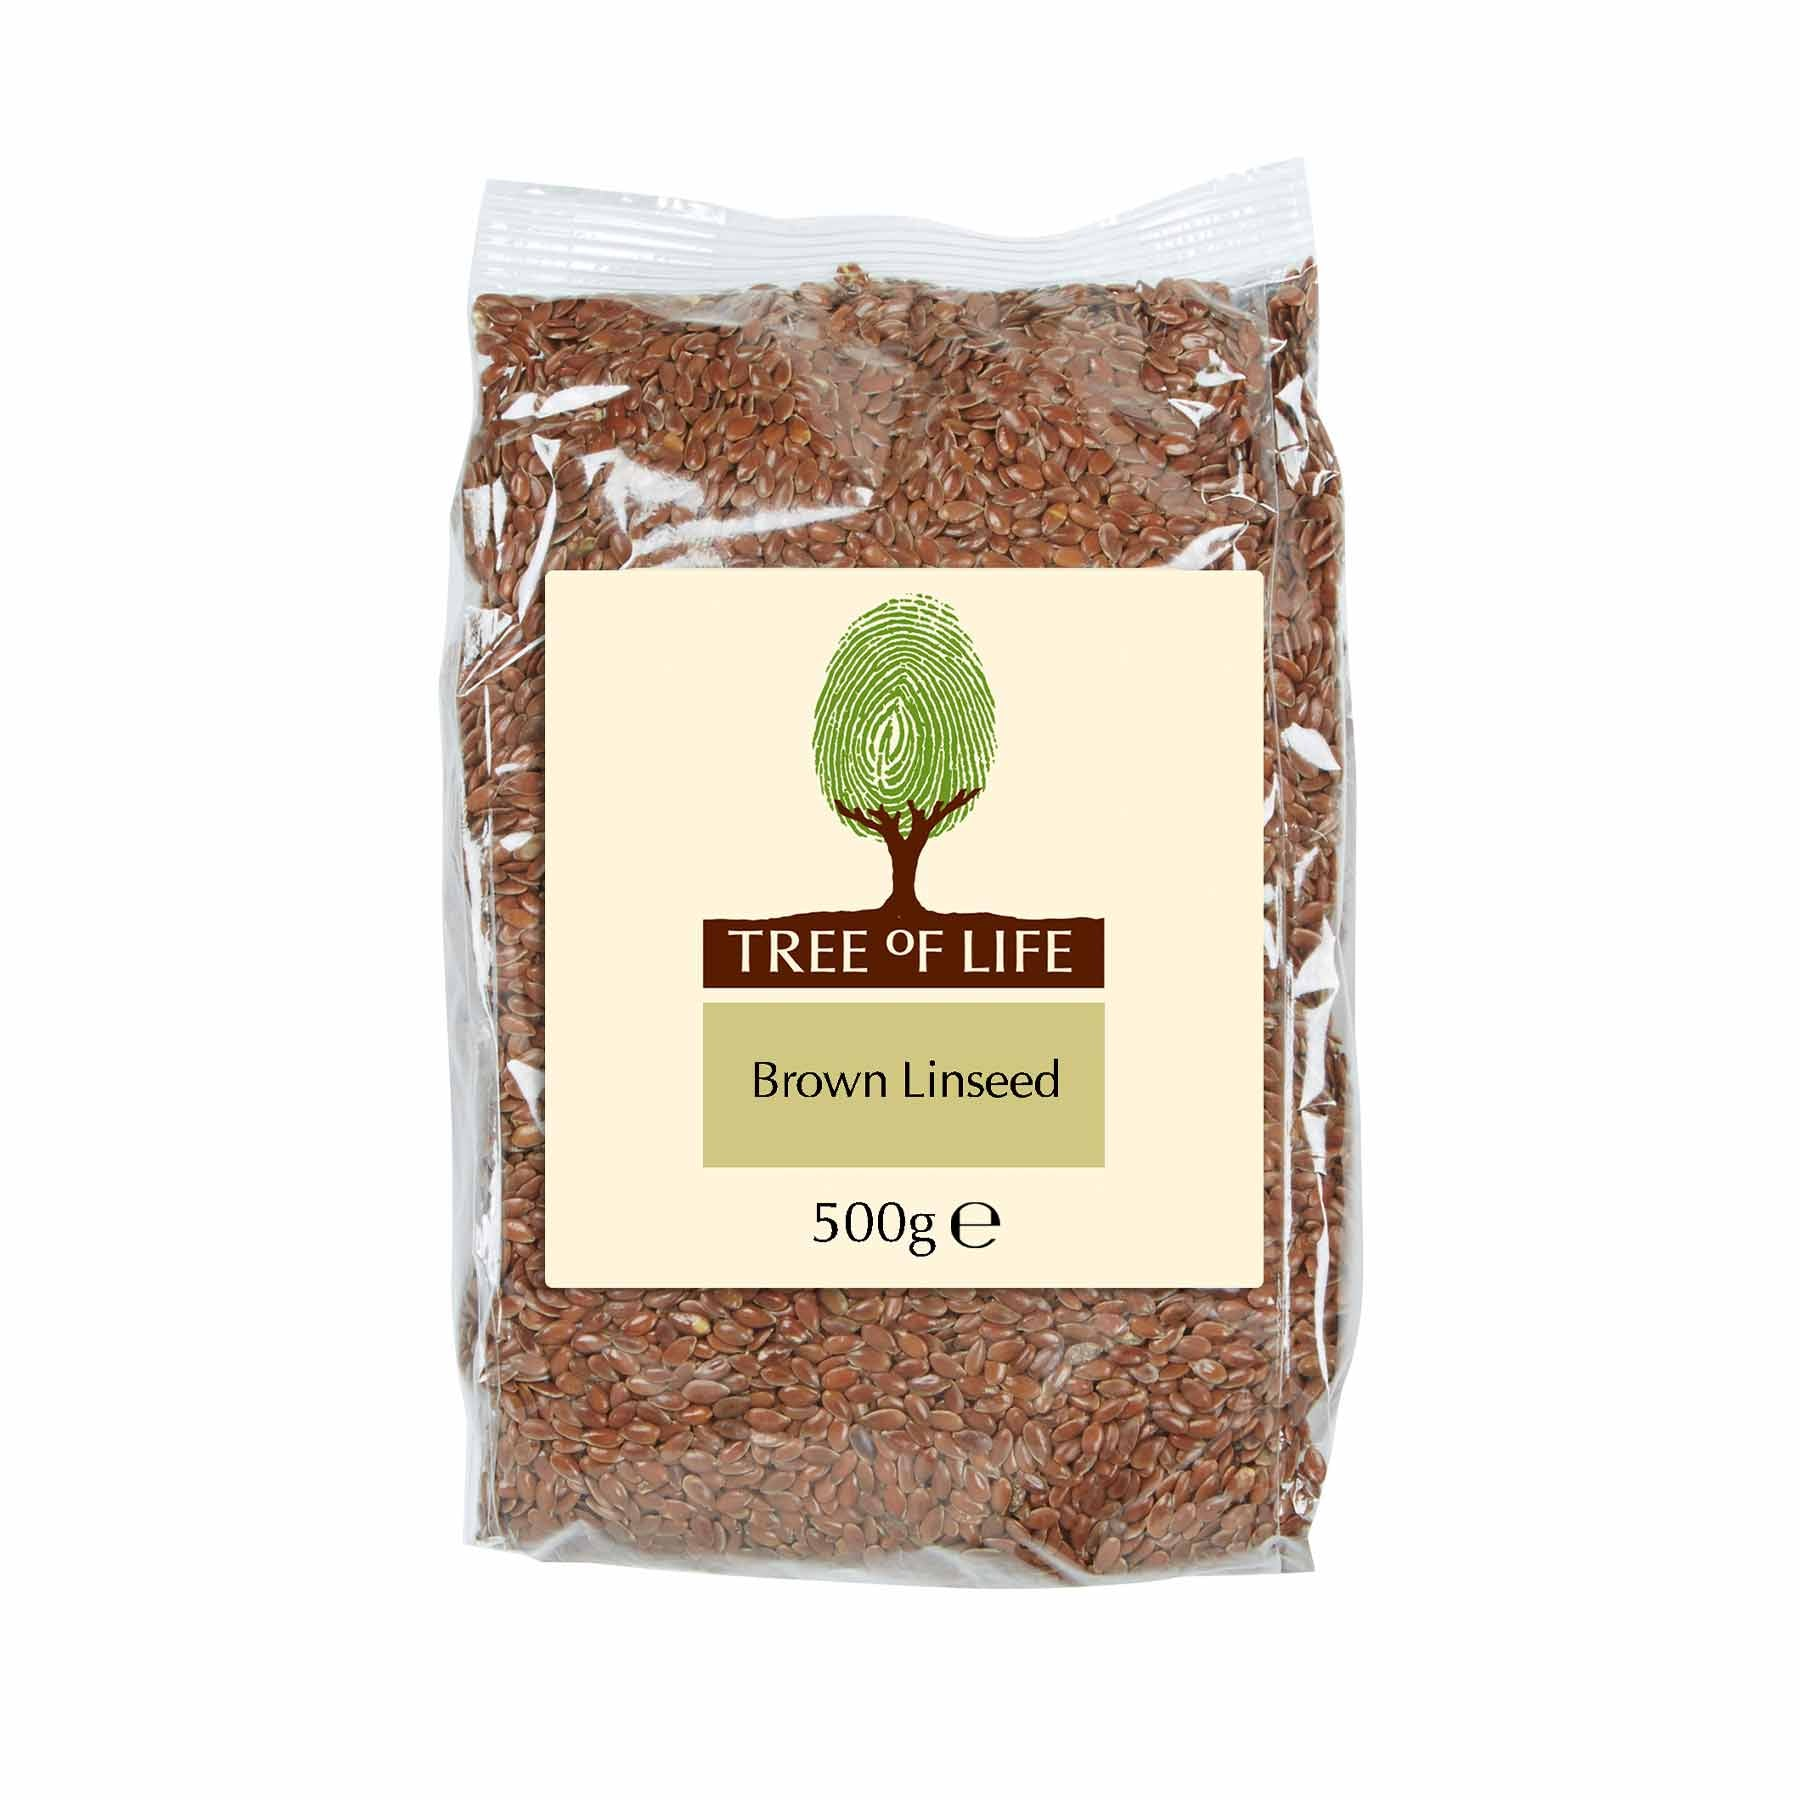 Packshot - Brown Linseed by Tree of Life